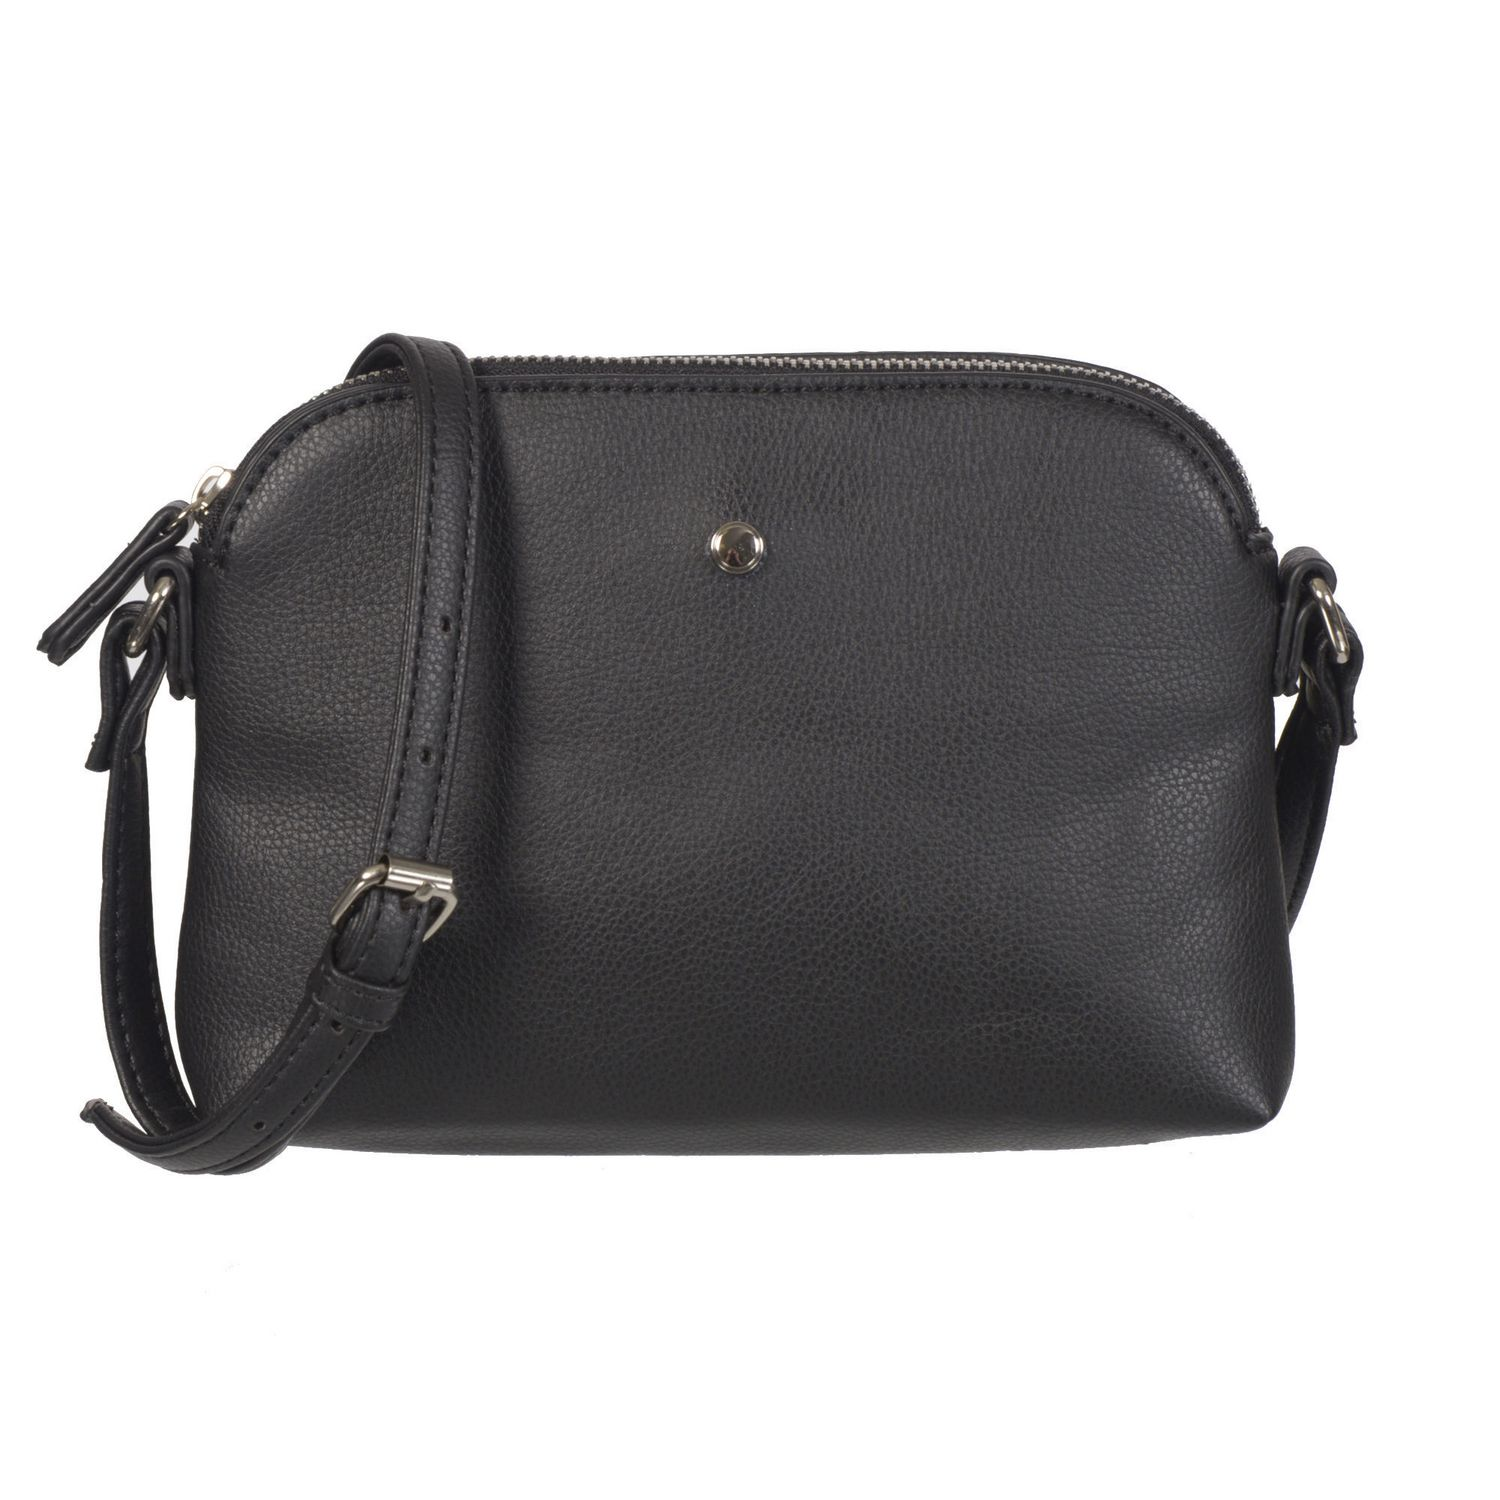 NICCI Women s Triple Entry Crossbody Bag - image 1 of 4 zoomed image